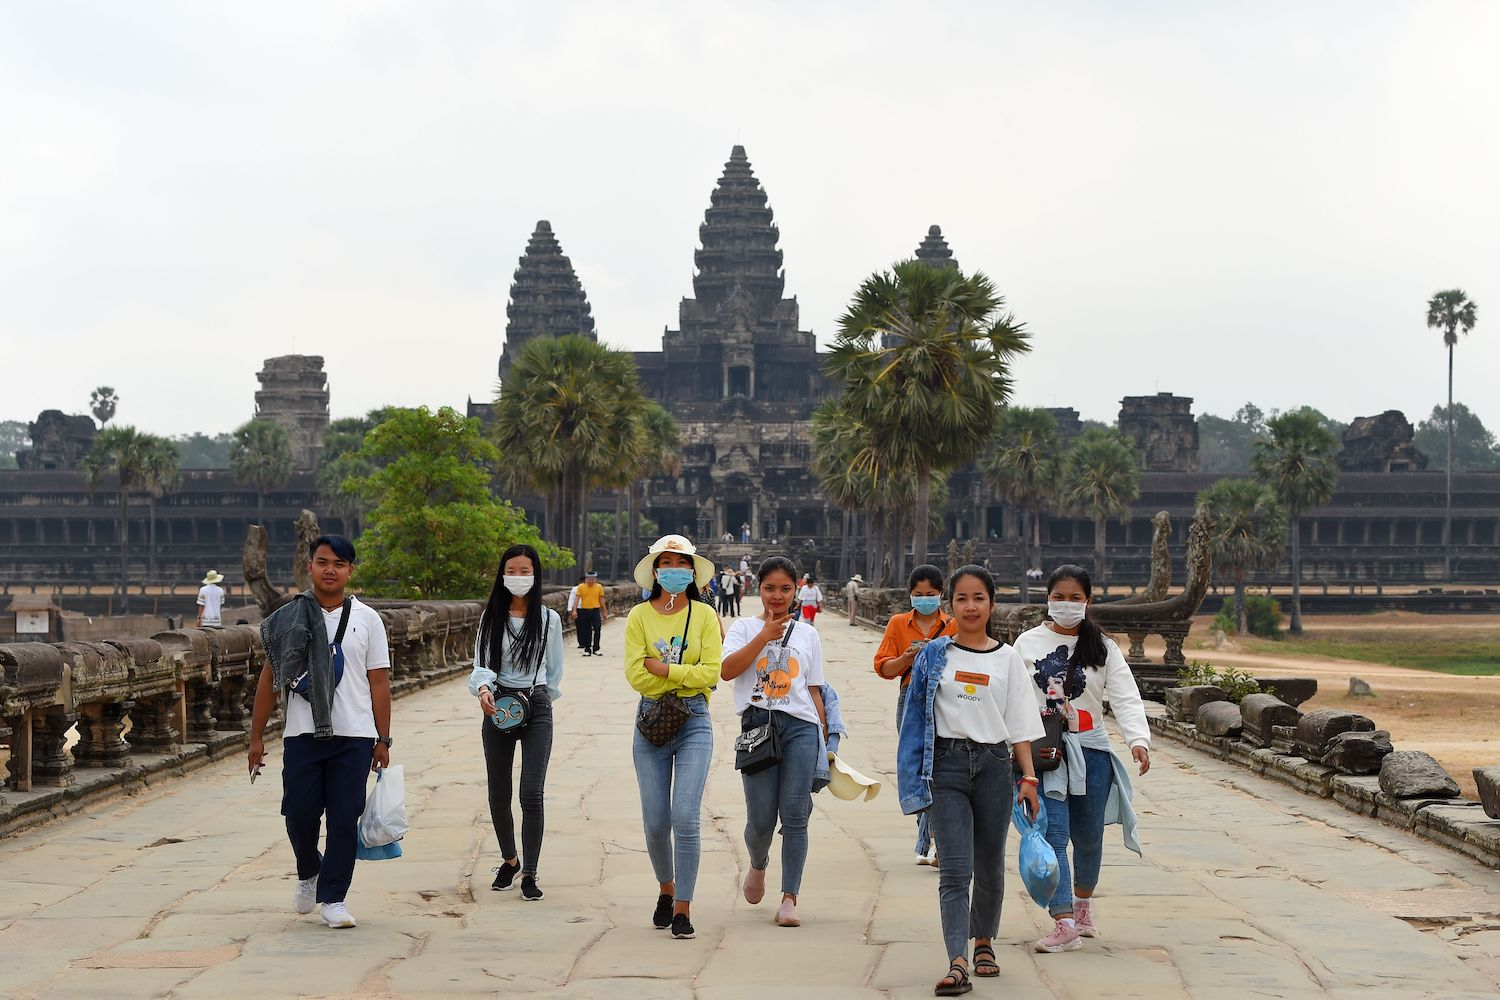 People wear face masks as they visit Angkor Wat in Siem Reap province of Cambodia on Friday. (AFP Photo)